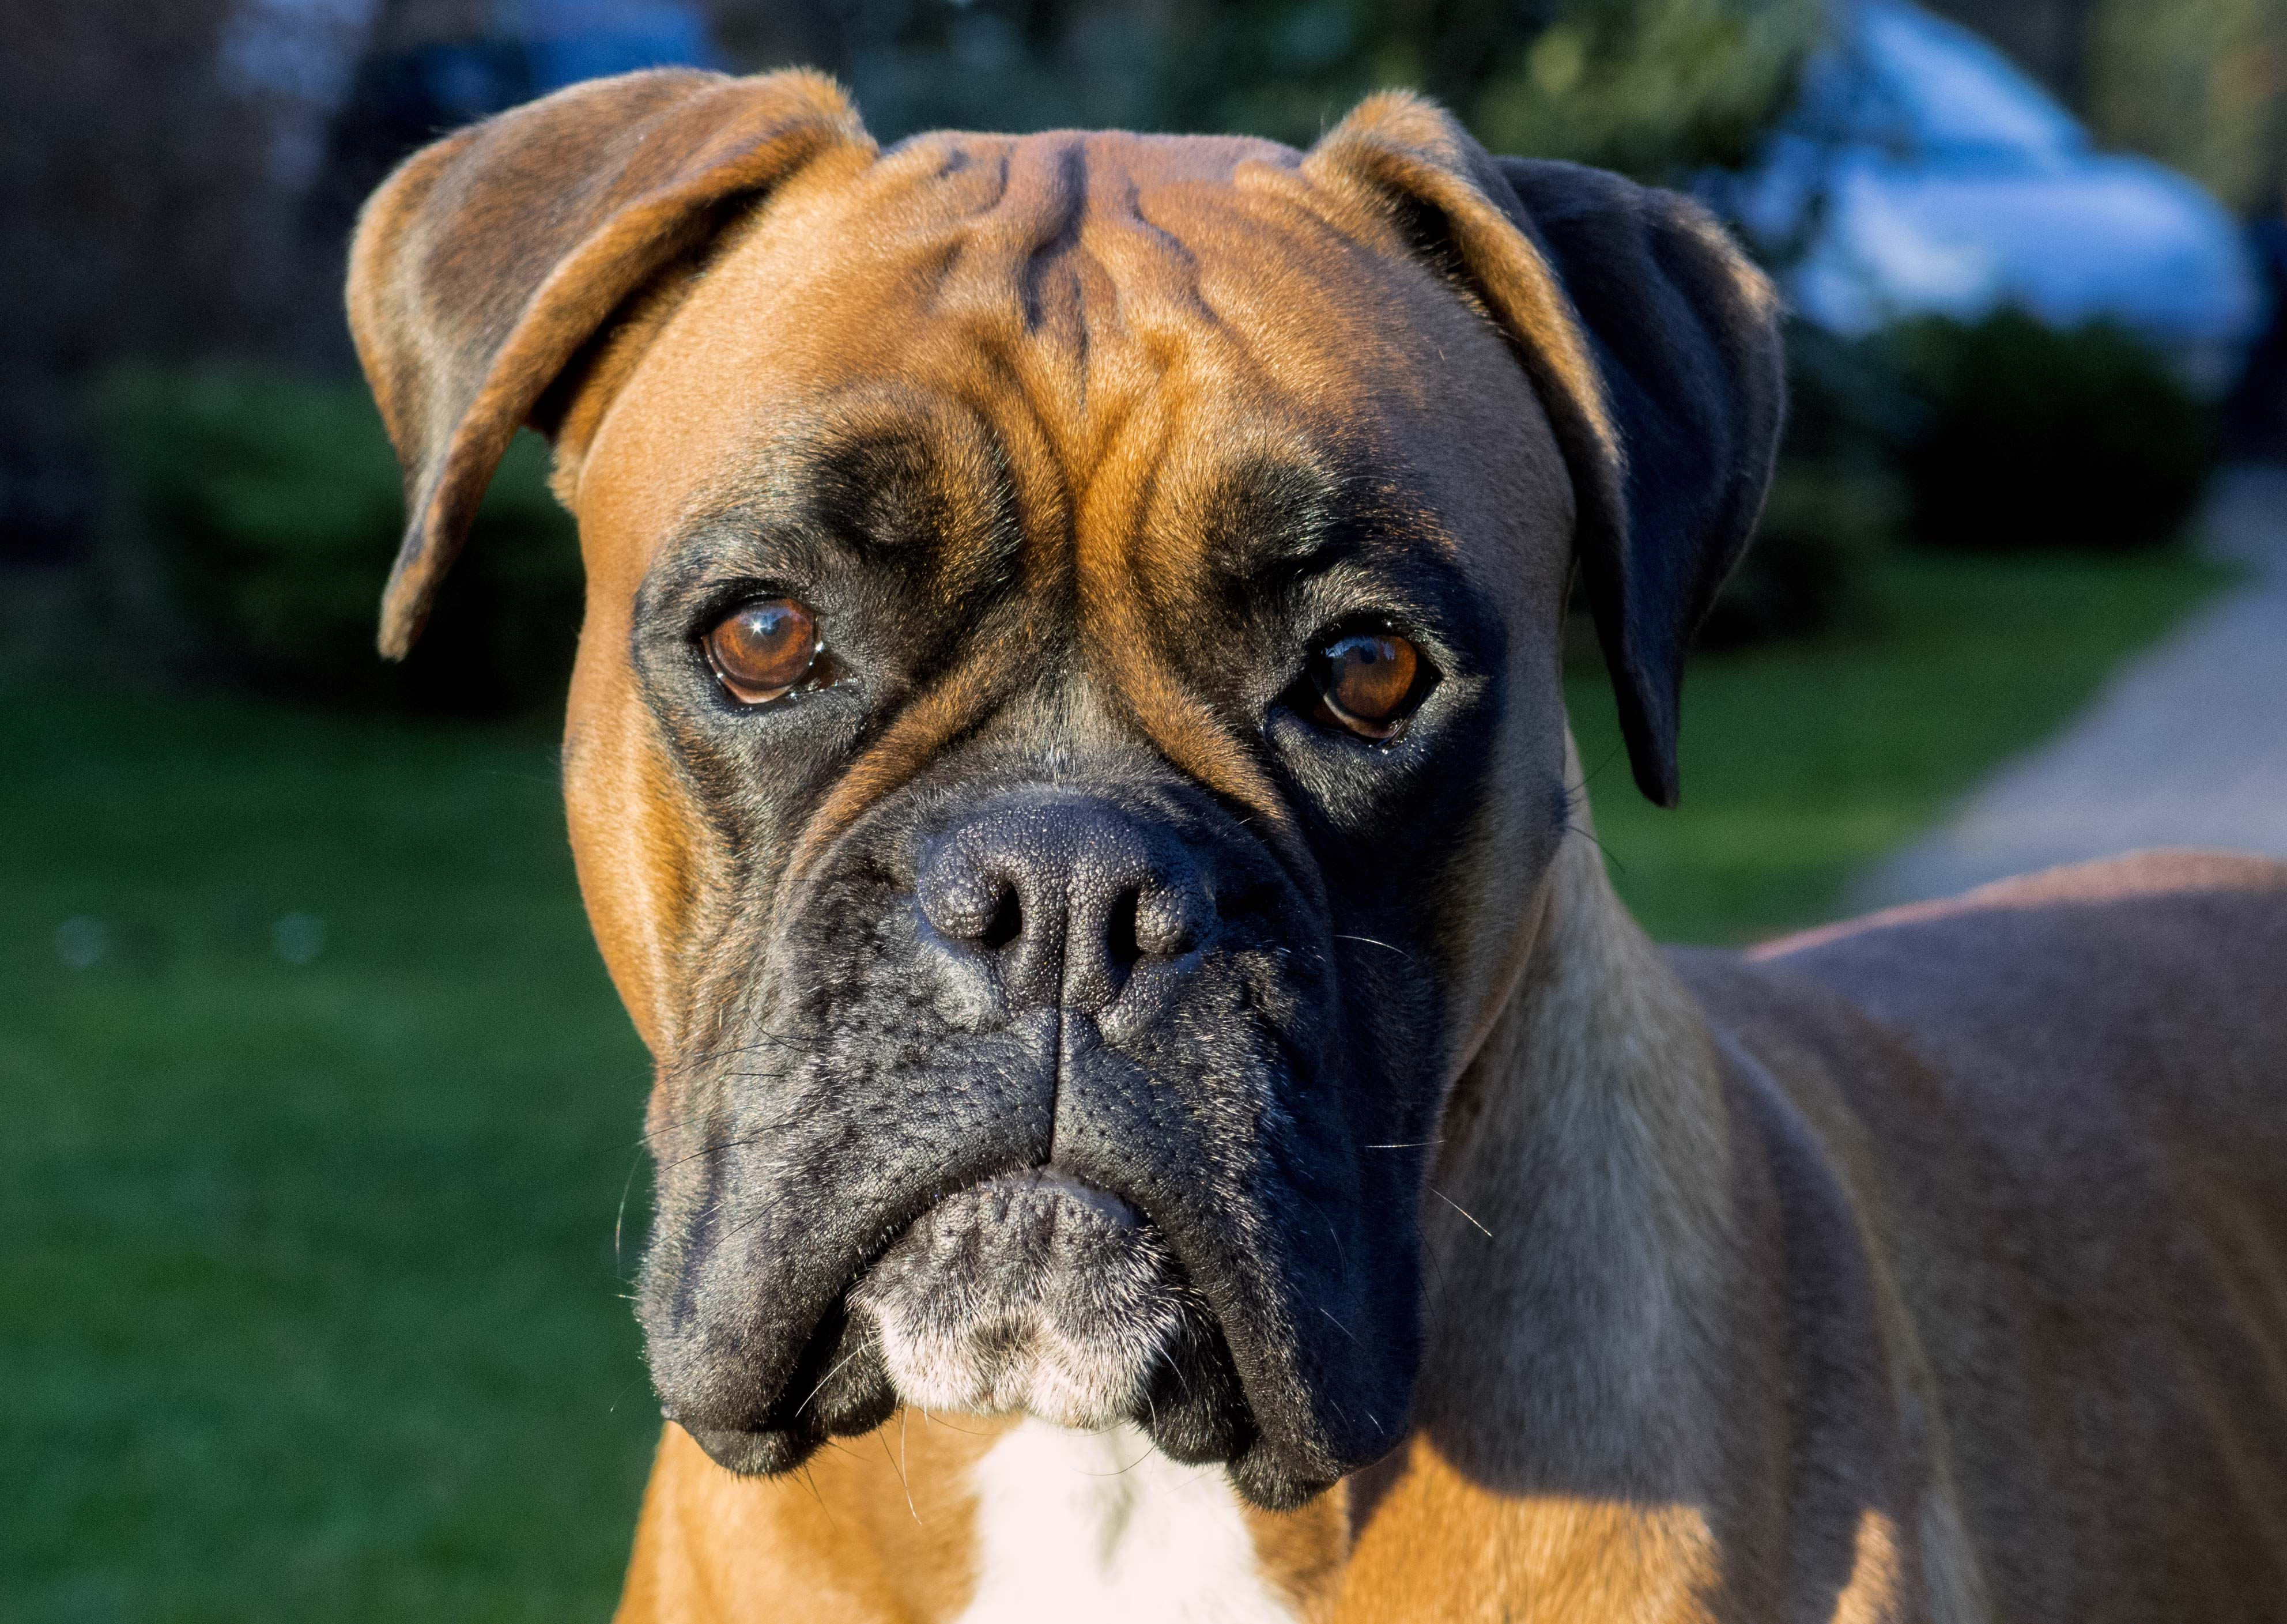 Cute Puppies Wallpaper Backgrounds Boxer Dog Hd Wallpapers